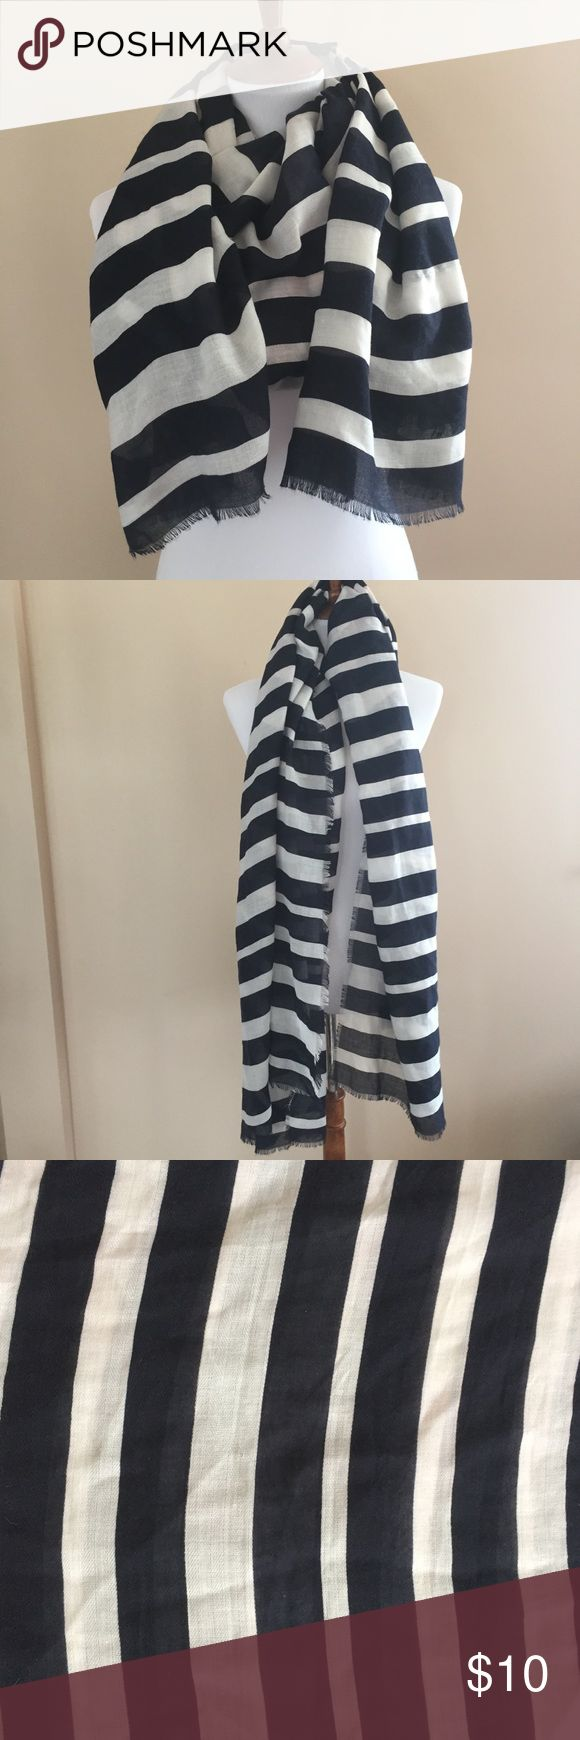 Old Navy Frayed Hem Oversized Striped Scarf Navy and white oversized scarf. Frayed hem around entire scarf. Cute addition to a summer wardrobe! 100% polyester. Old Navy Accessories Scarves & Wraps